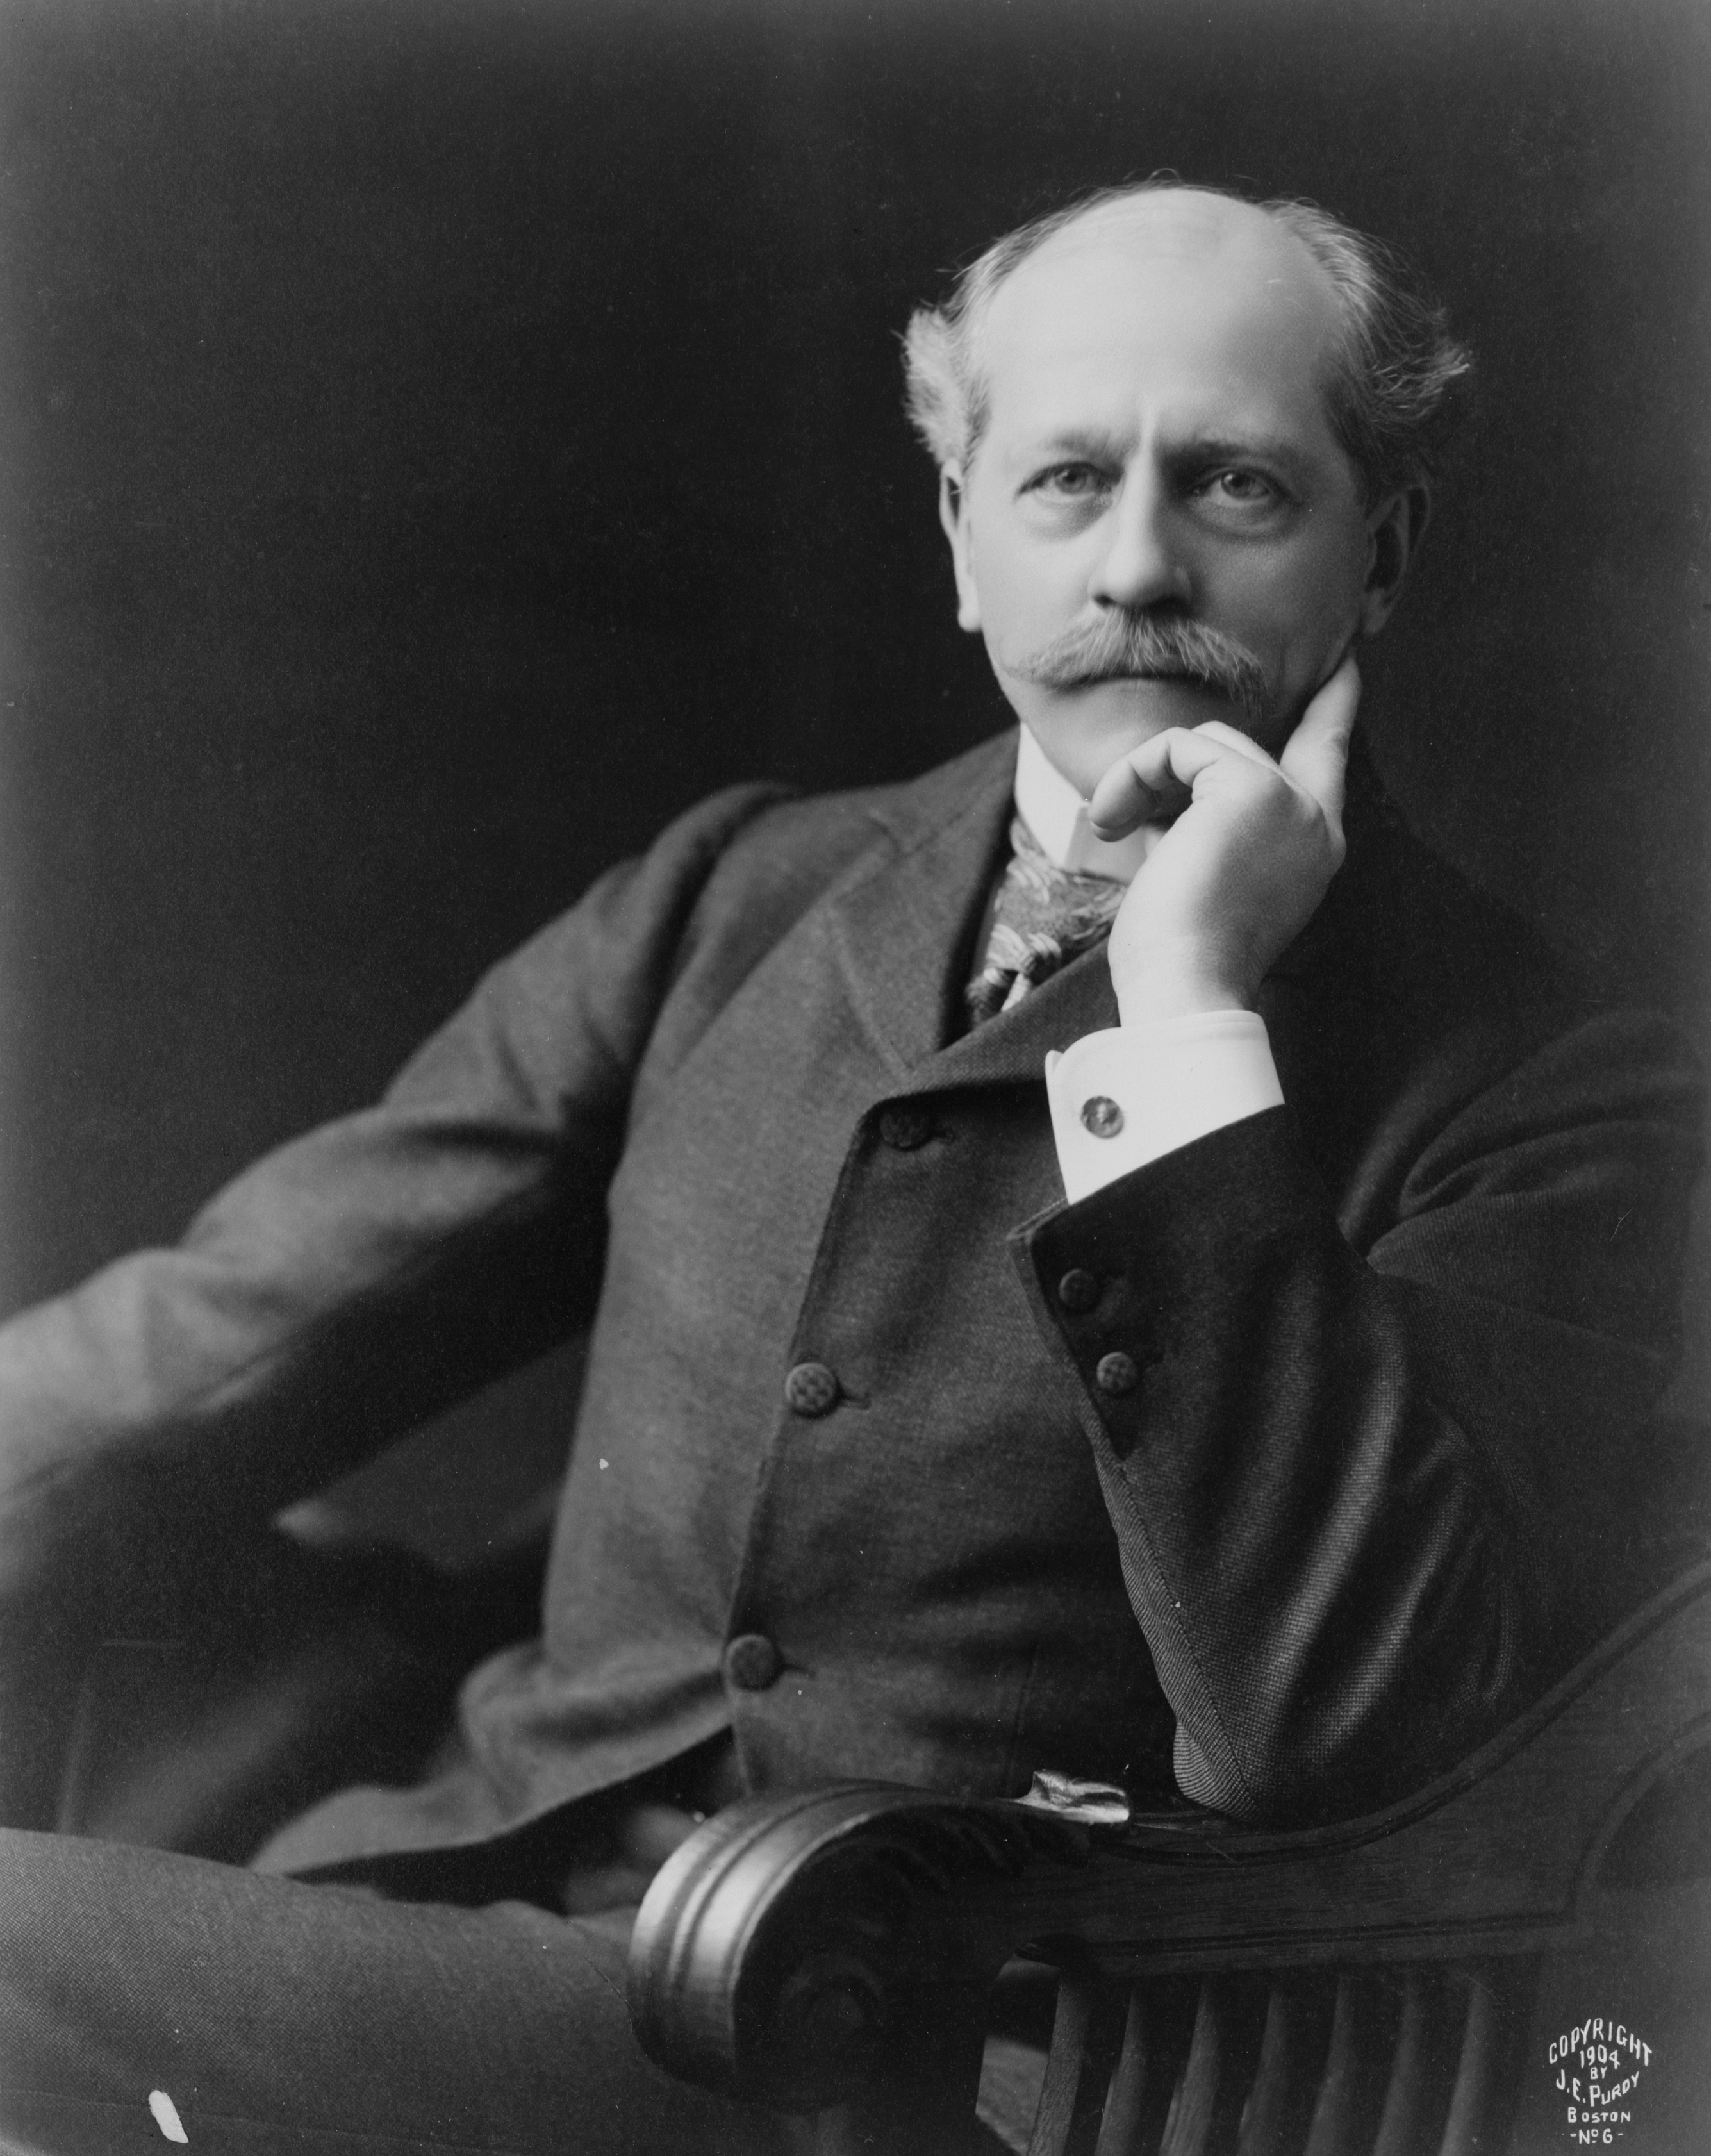 Image of Percival Lowell from Wikidata